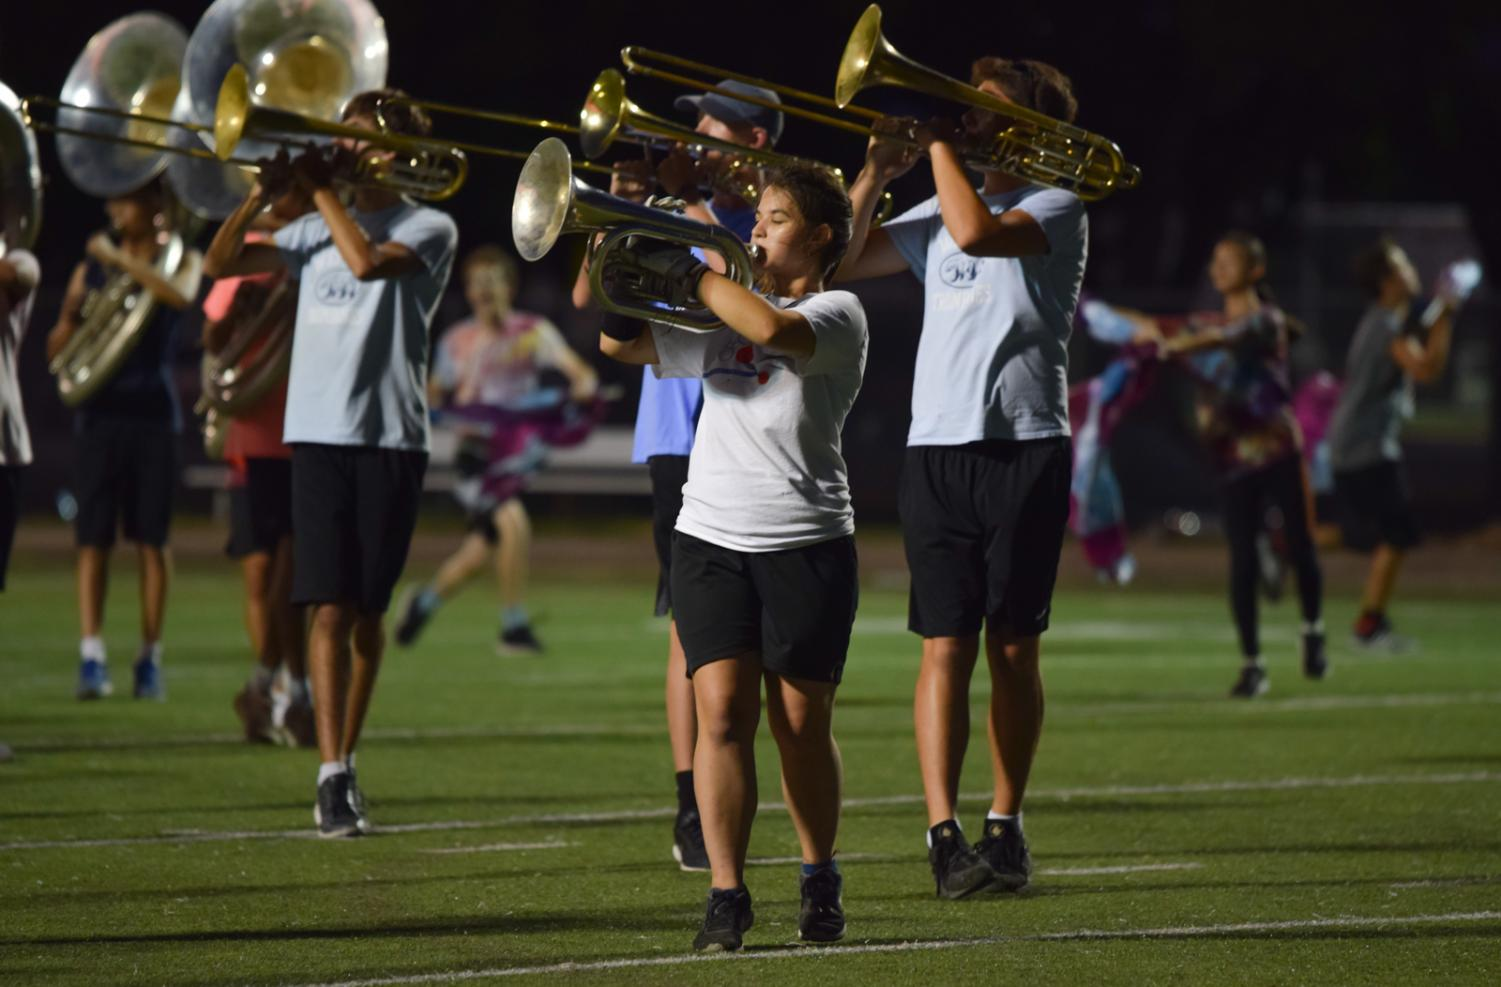 Vanessa+Henley+%E2%80%9820+plays+her+baritone+next+to+the+trombones+while+marching.